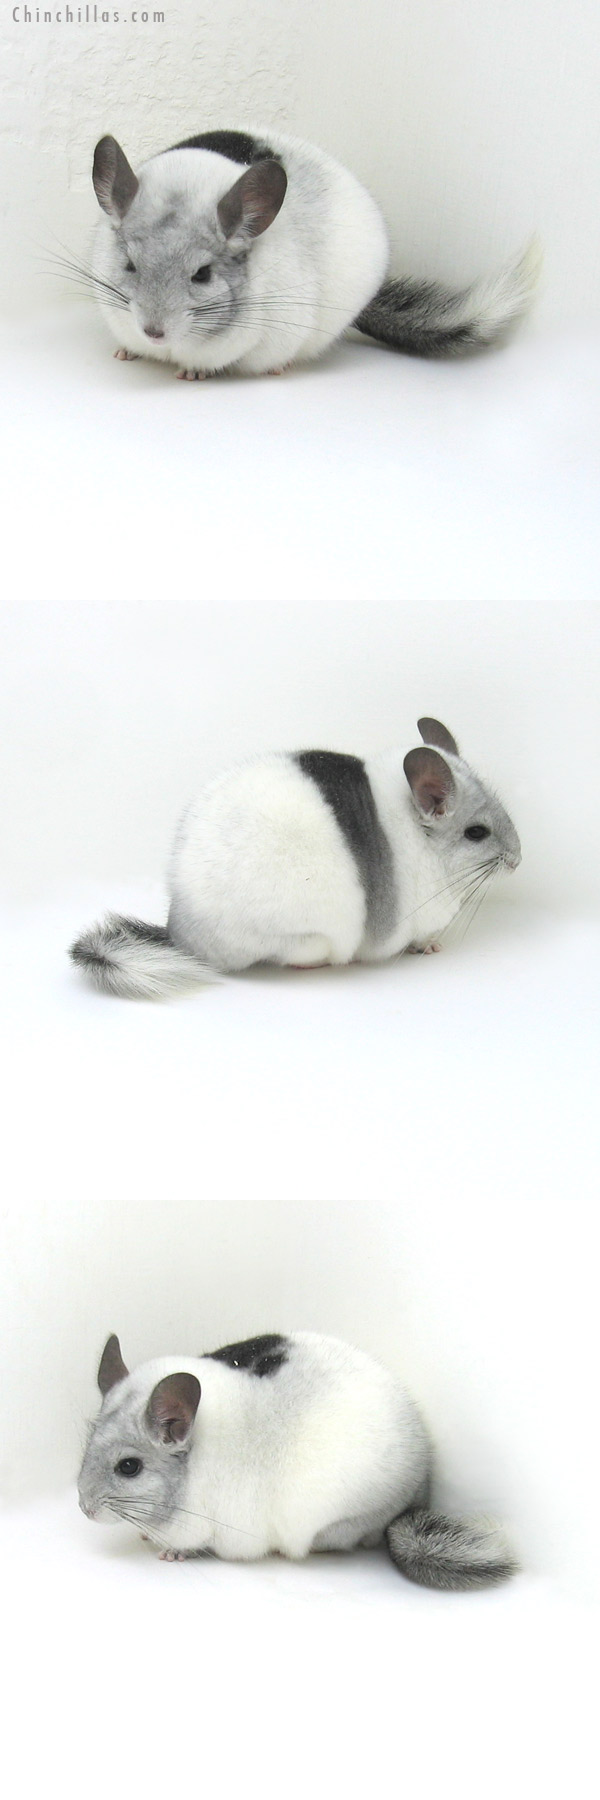 12067 Blocky, Herd Improvement Quality Extreme White Mosaic Male Chinchilla